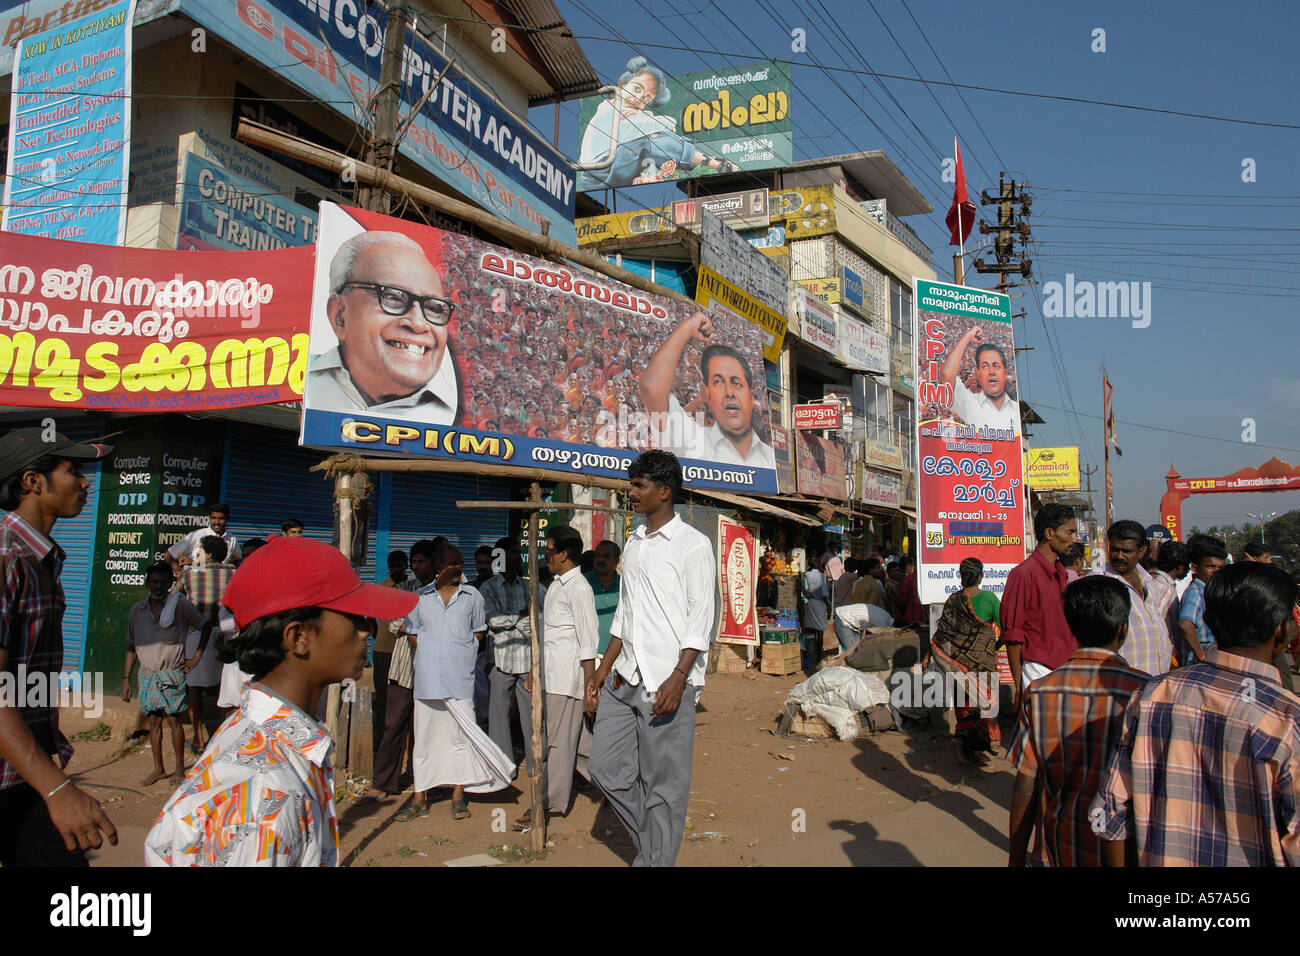 Painet jc3088 india billboards communist party marxist kerala country developing nation economically developed culture - Stock Image